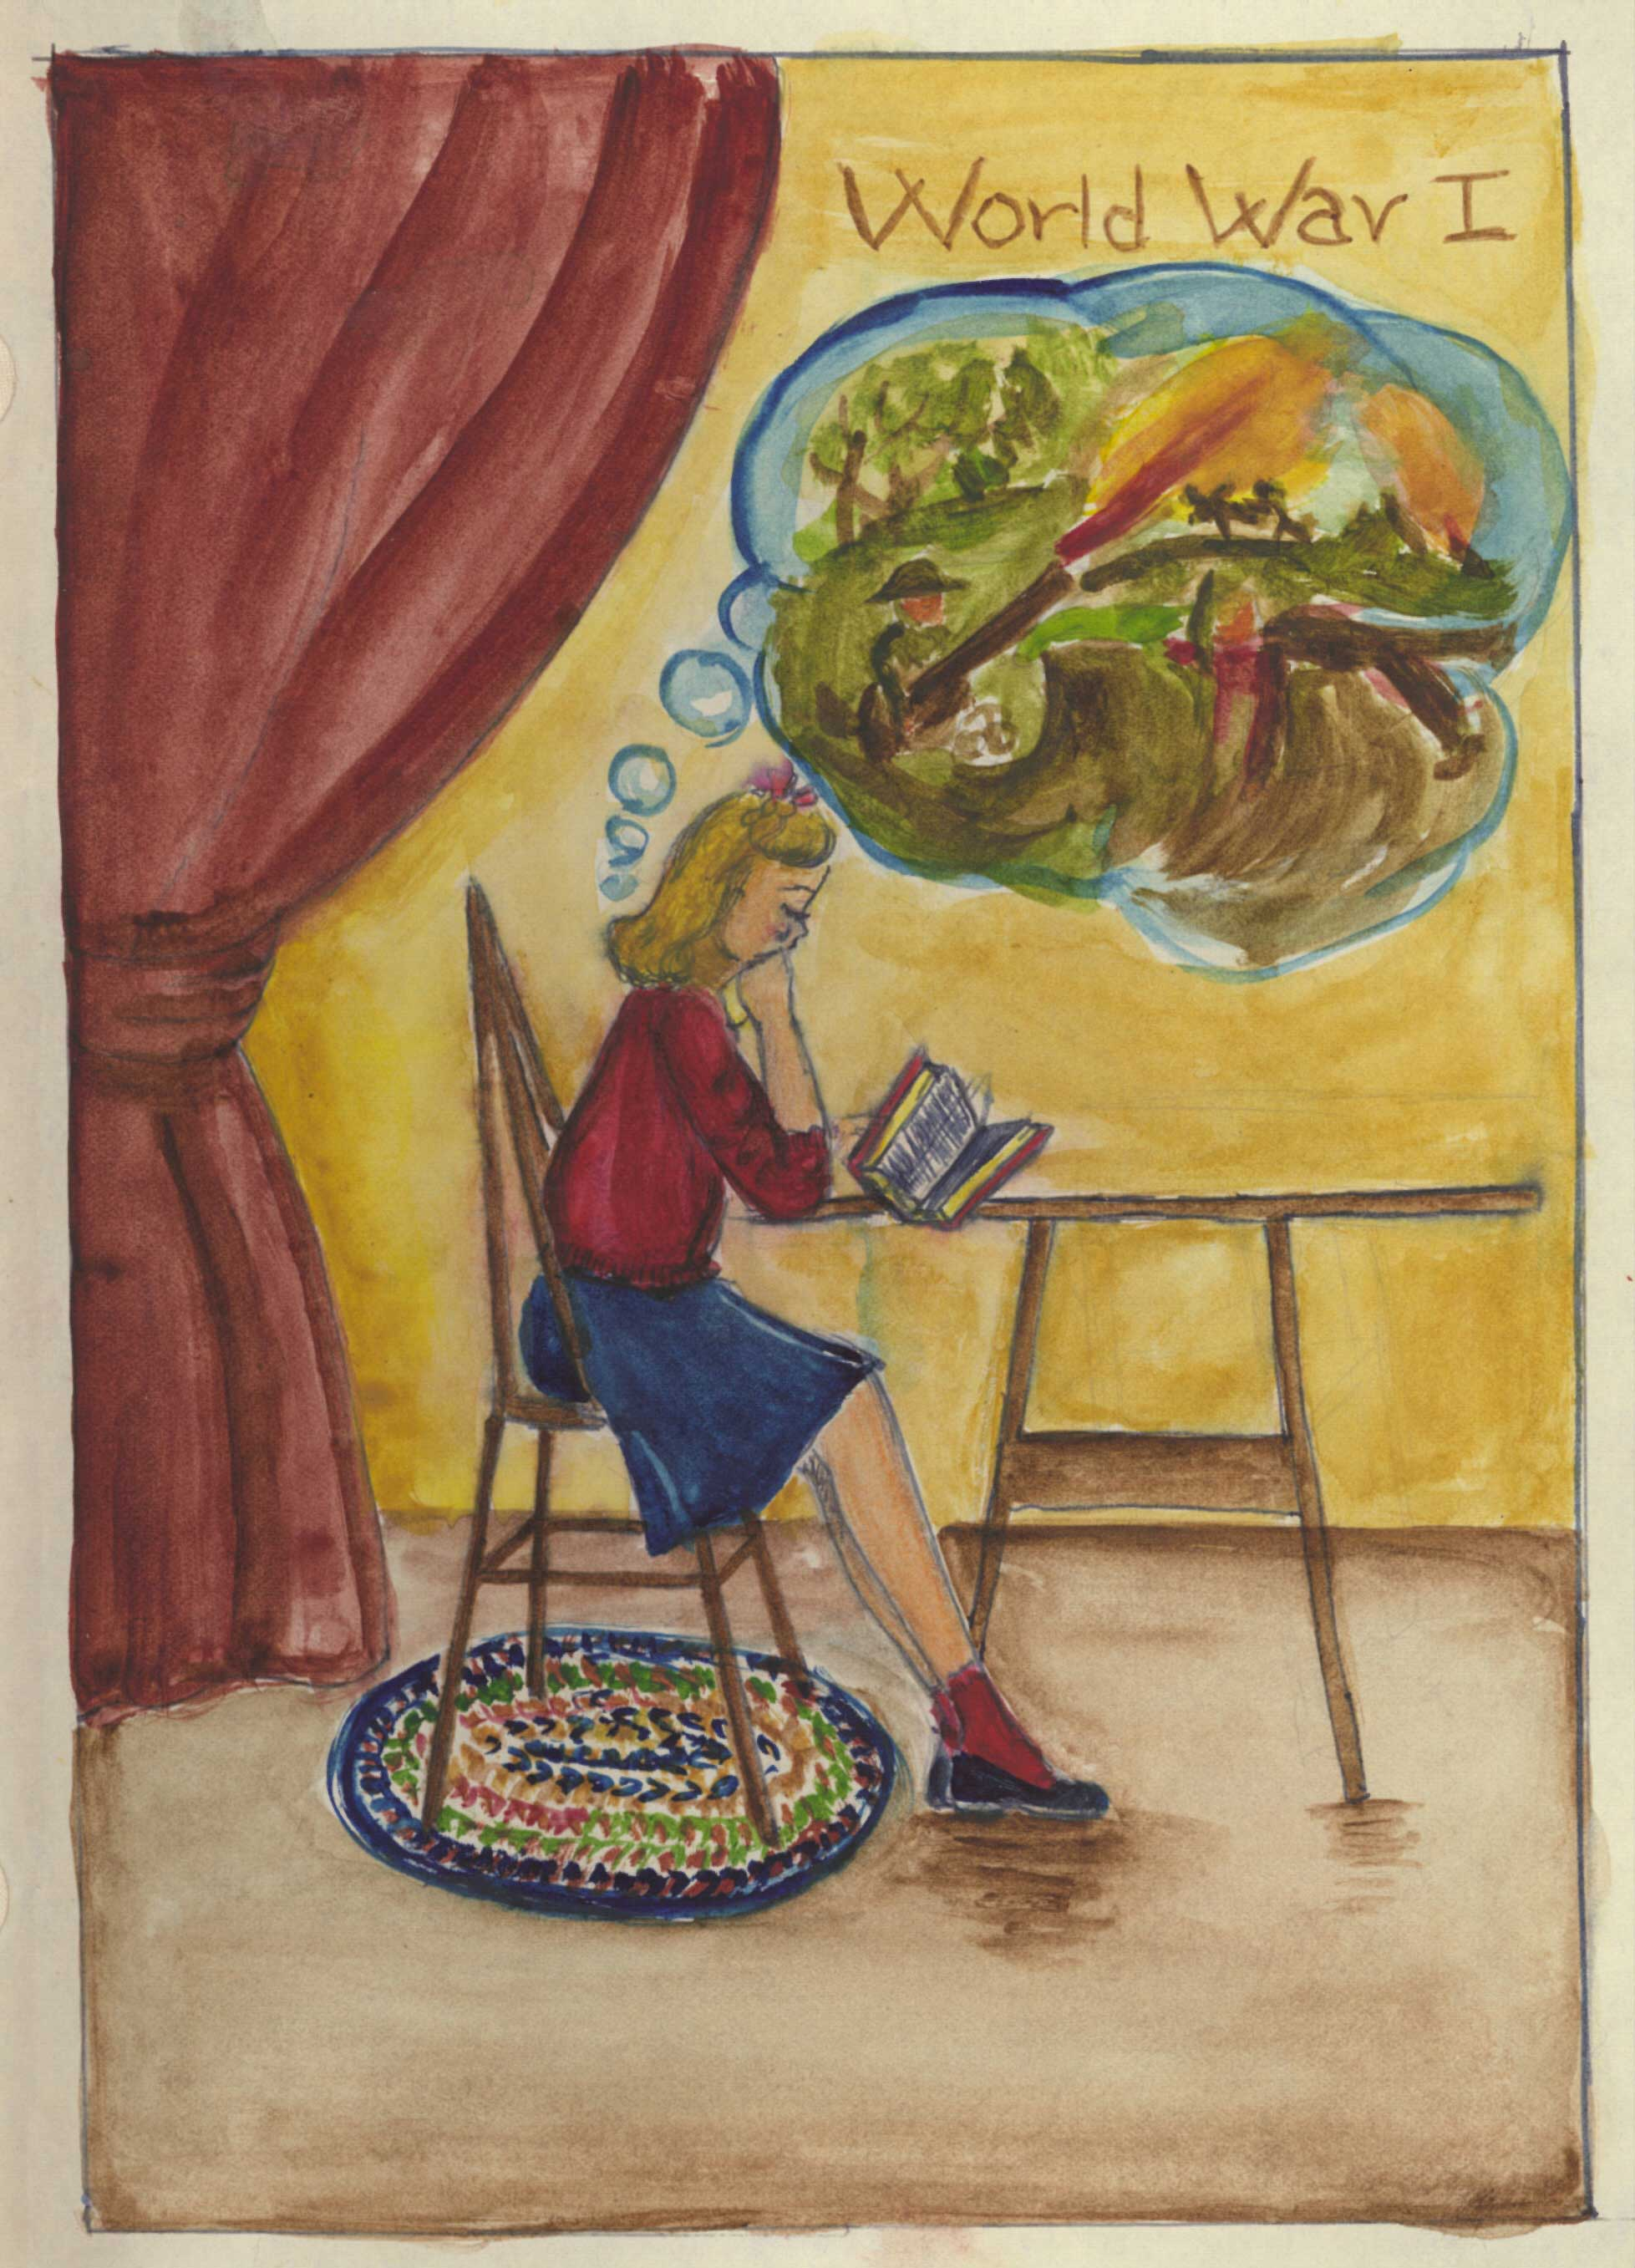 sylvia plath on war national portrait gallery a drawing of a young girl reading a book and imagining a battle in a thought